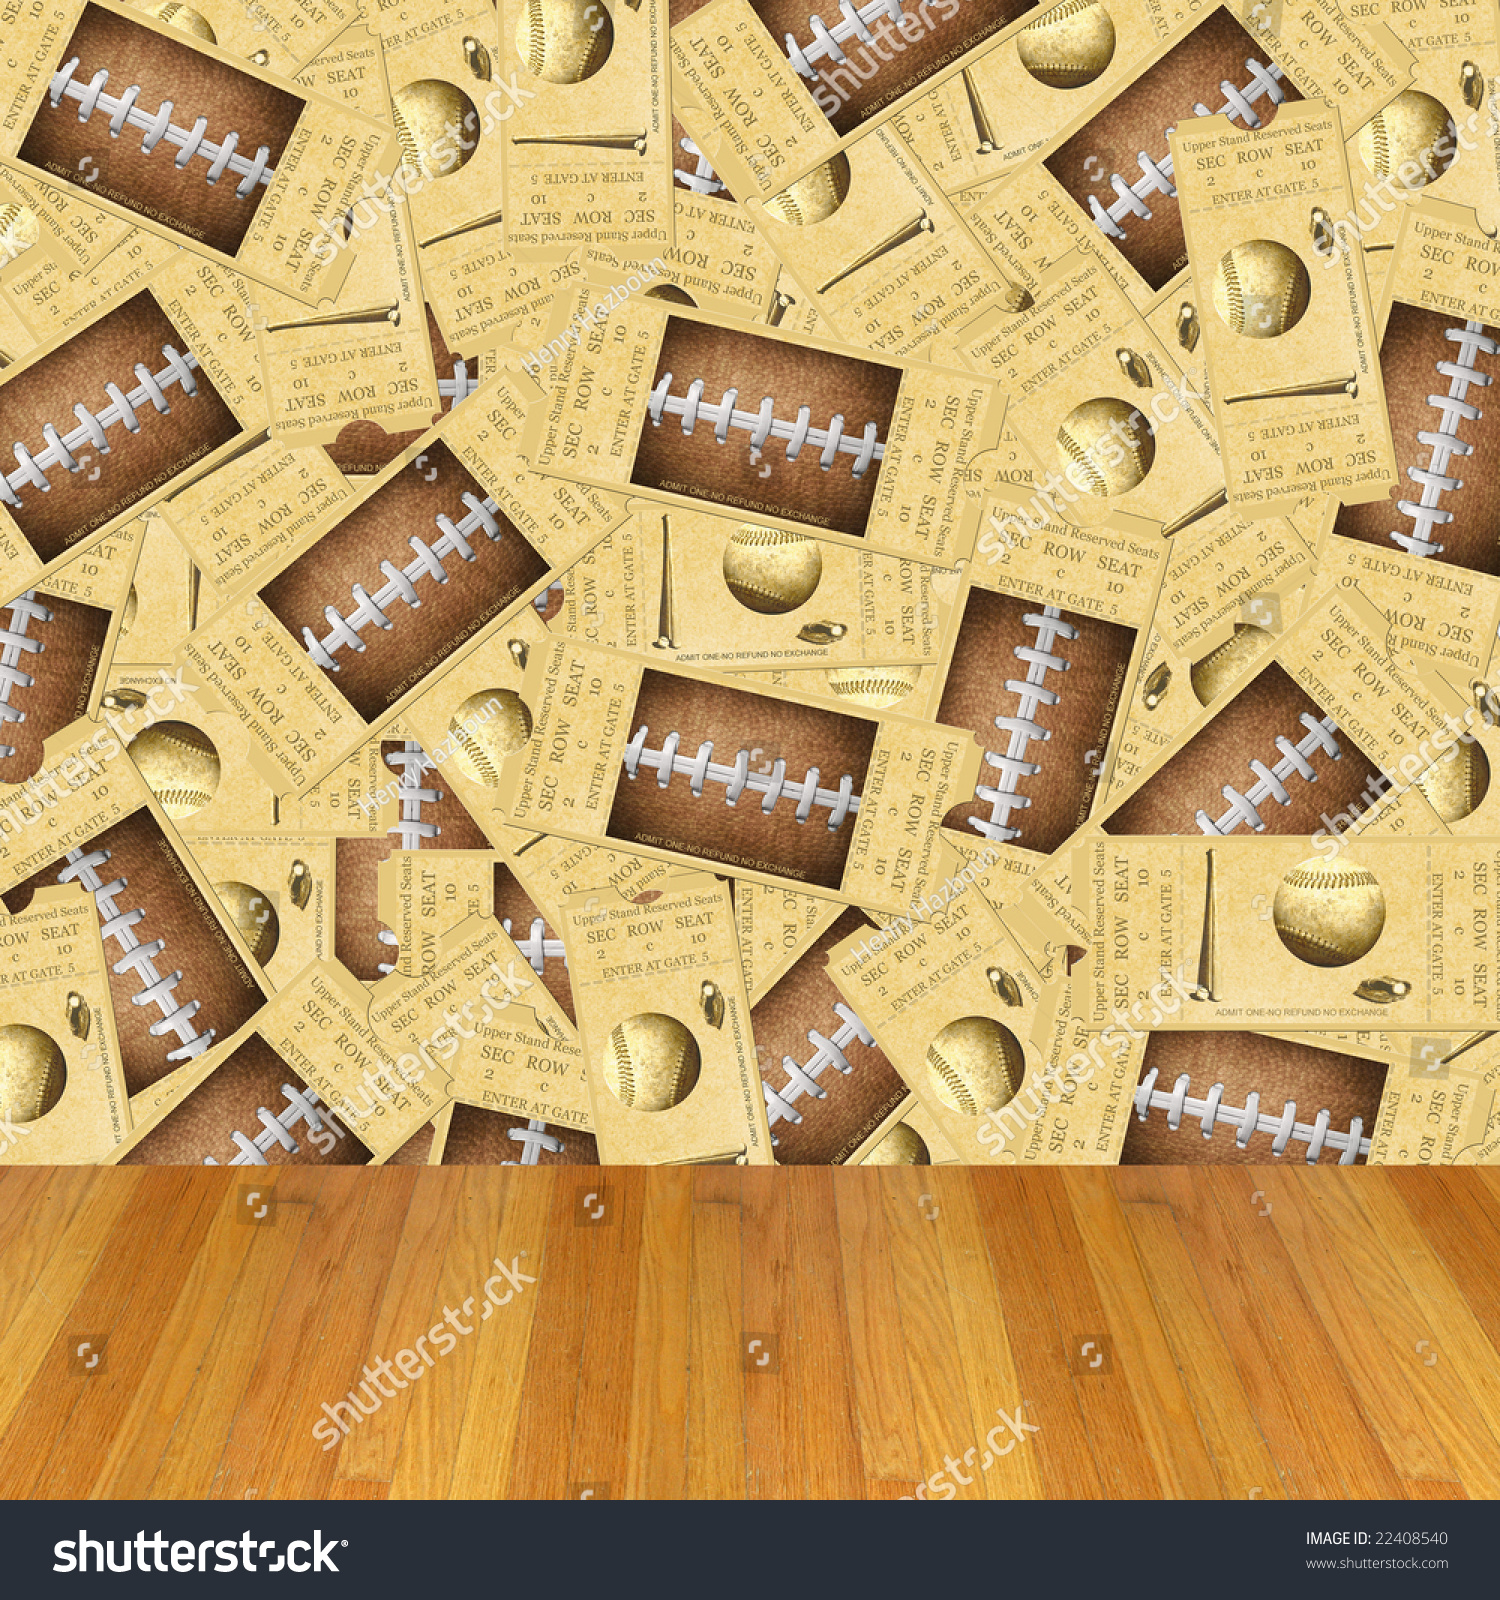 Simple Wallpaper Football Baseball - stock-photo-dimensional-room-with-football-baseball-ticket-wallpaper-and-a-wood-floor-22408540  Pic_78268 .jpg